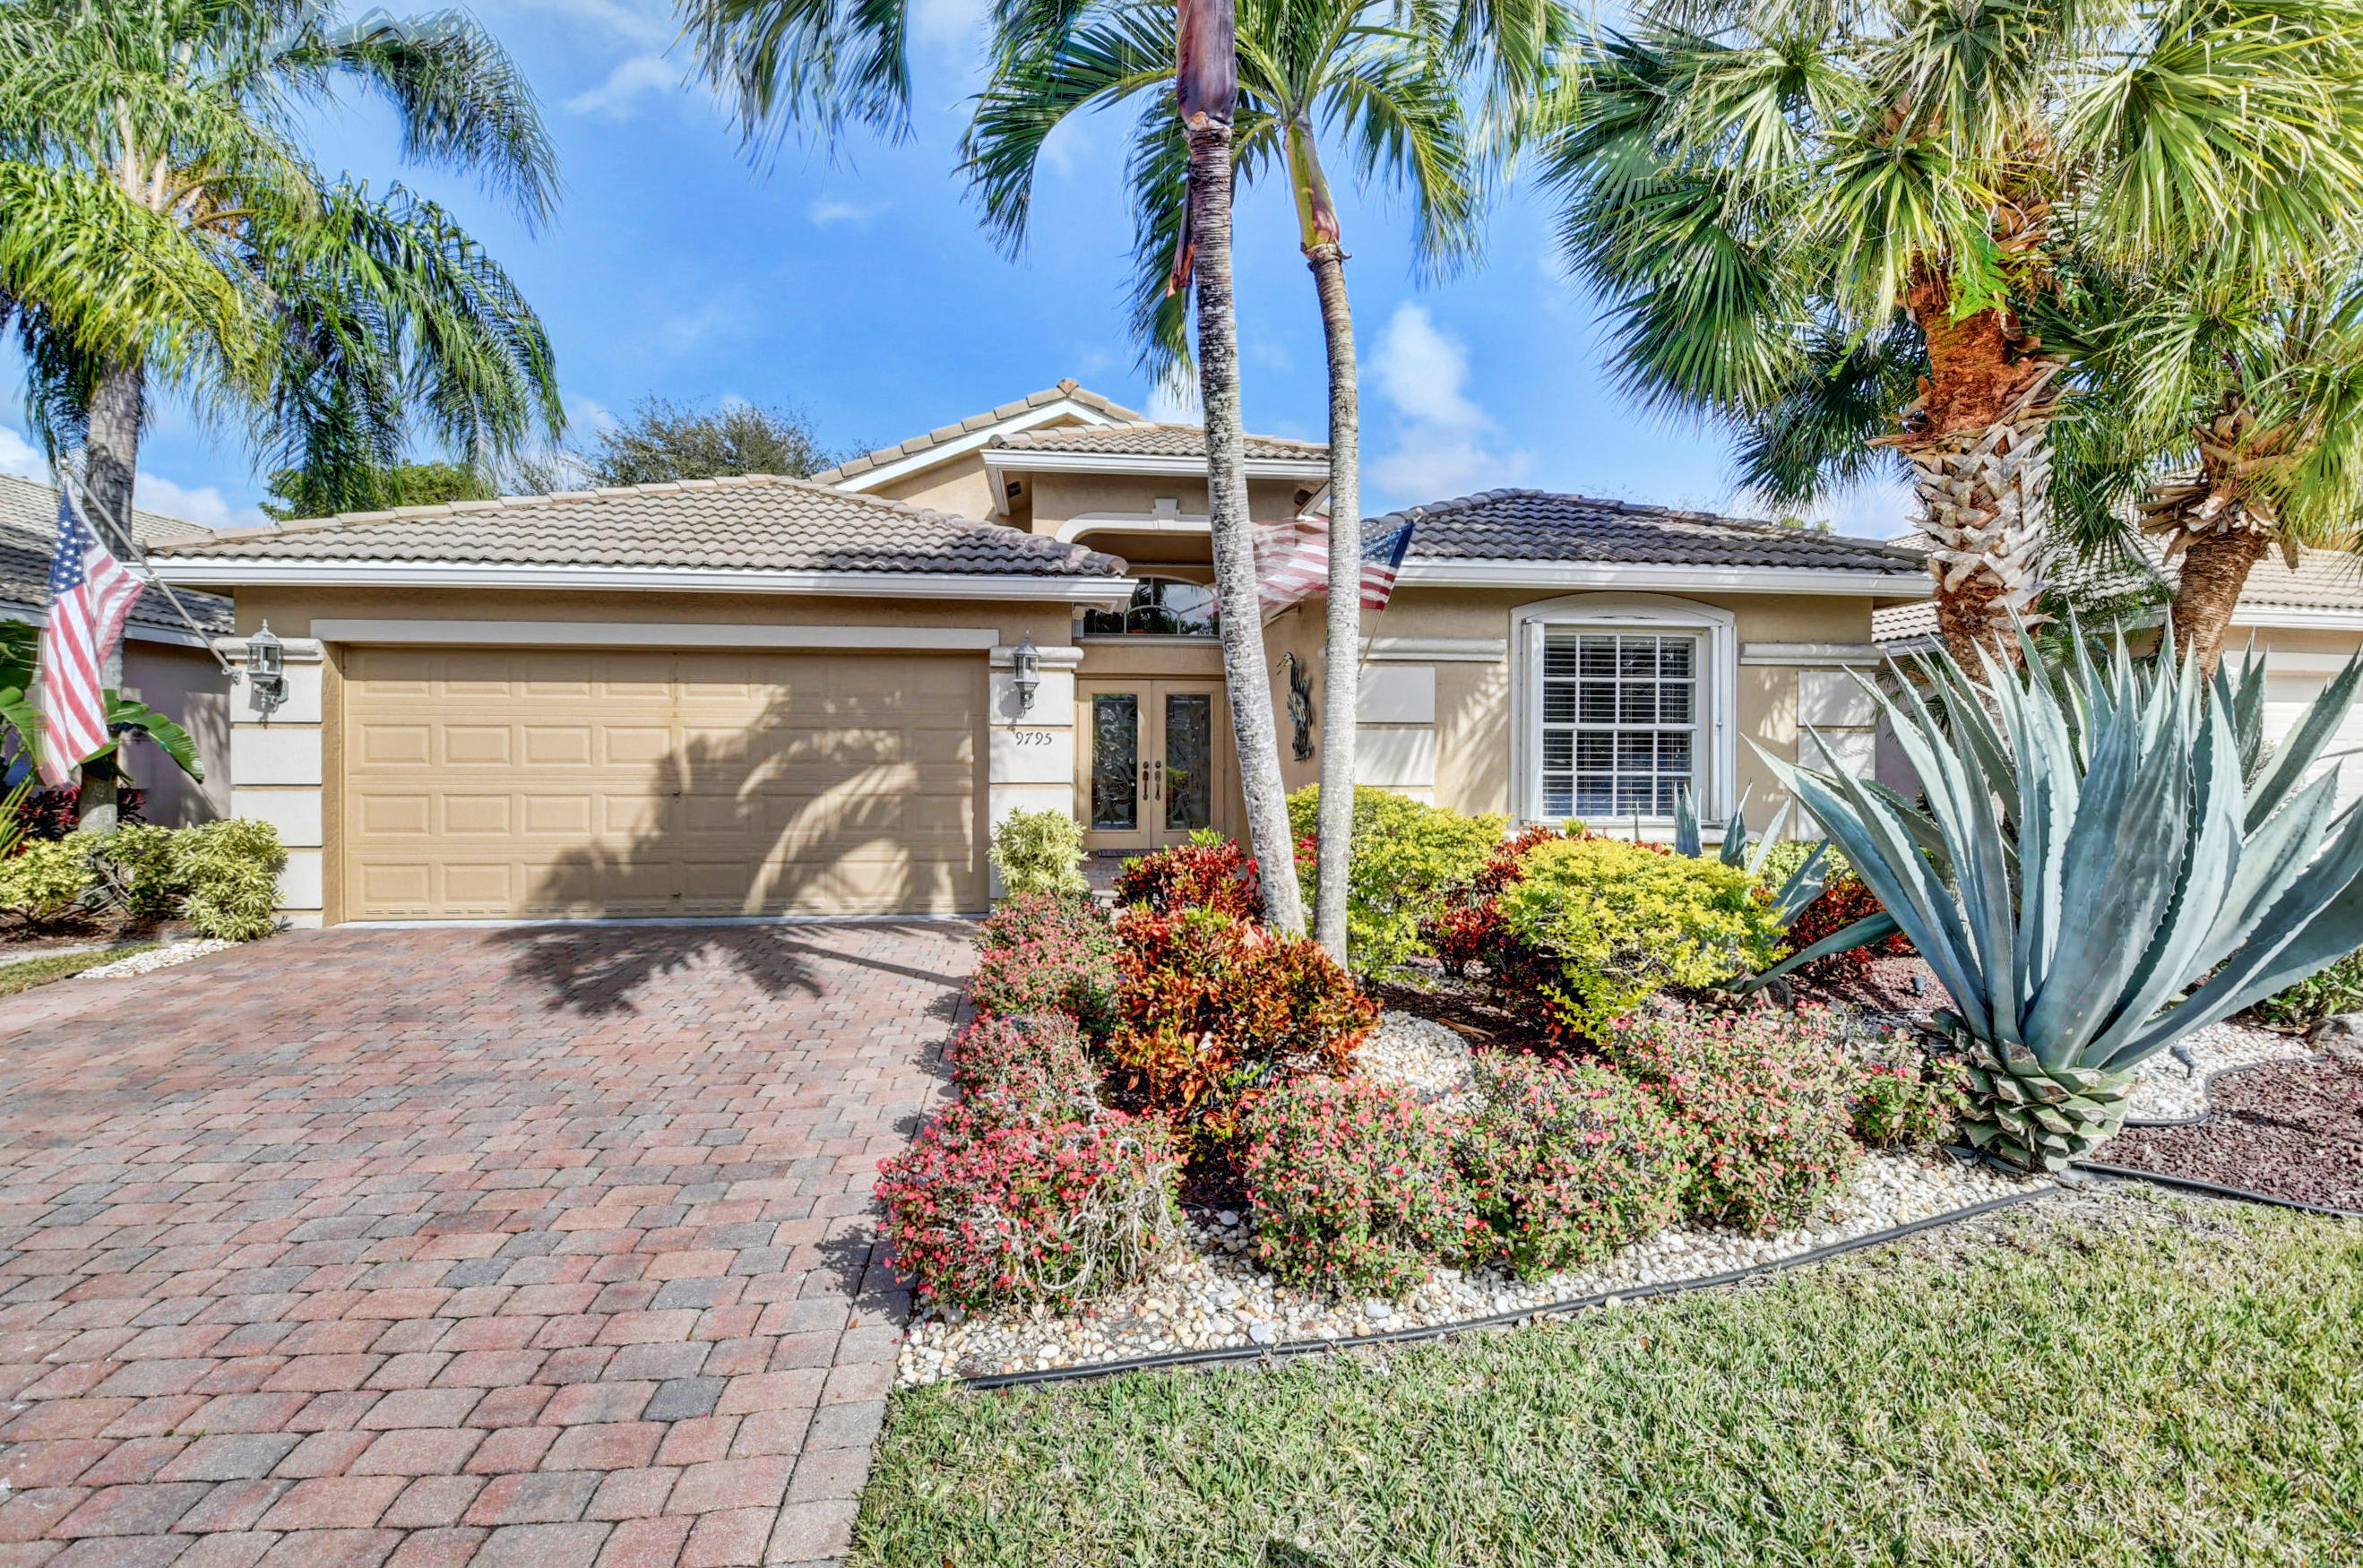 9795 Donato Lake Worth FL 33467